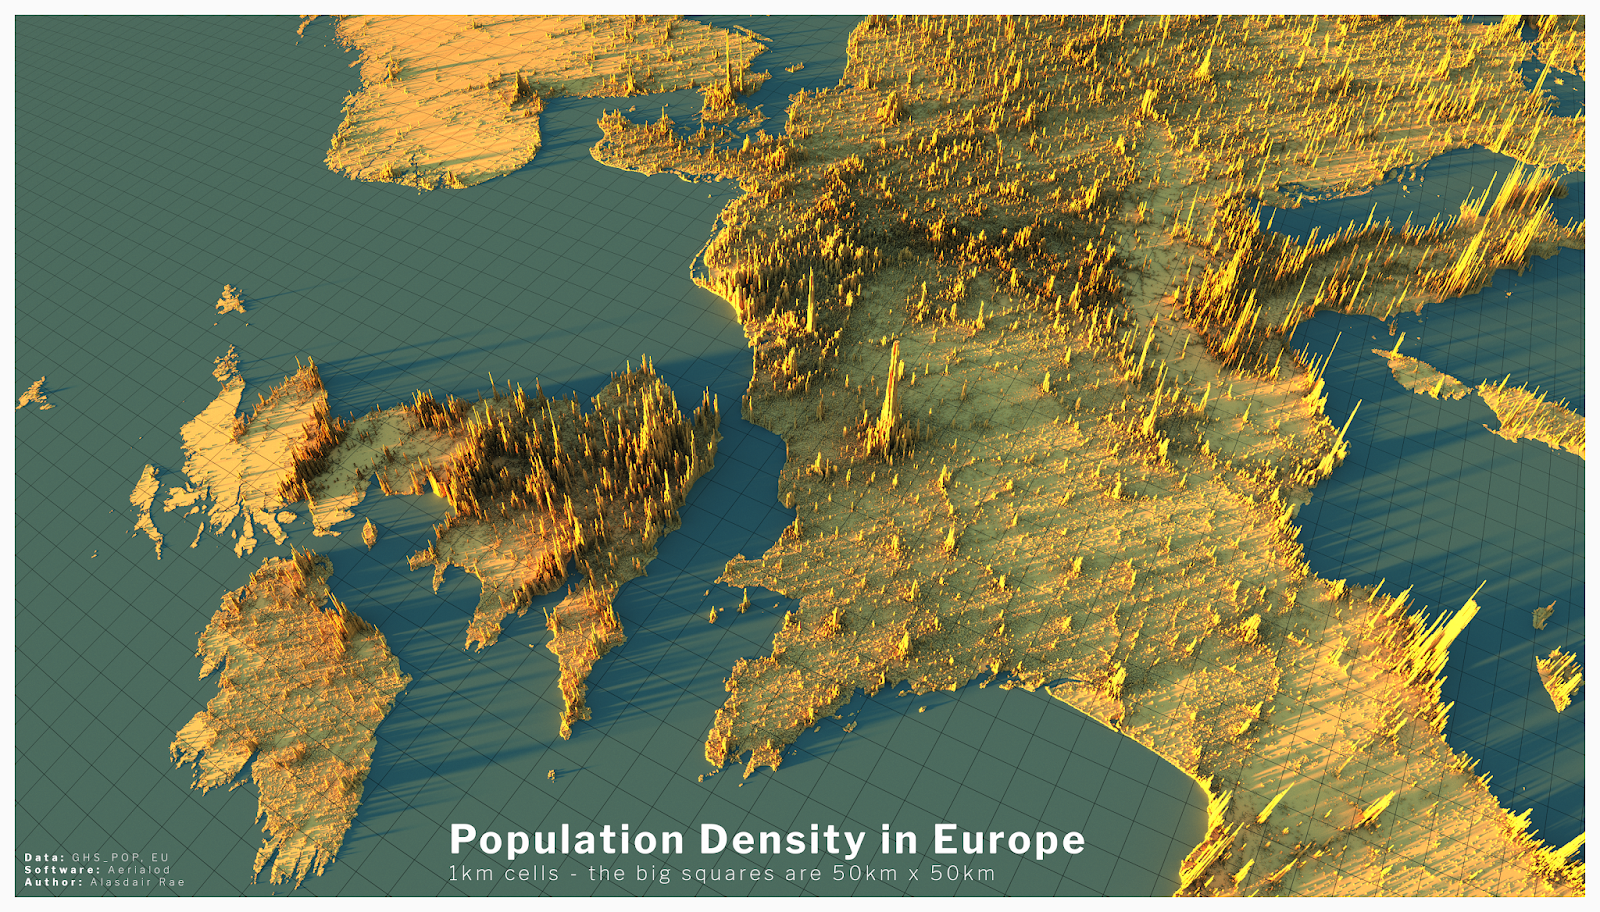 population map of europe Stats, Maps n Pix: Population density in Europe